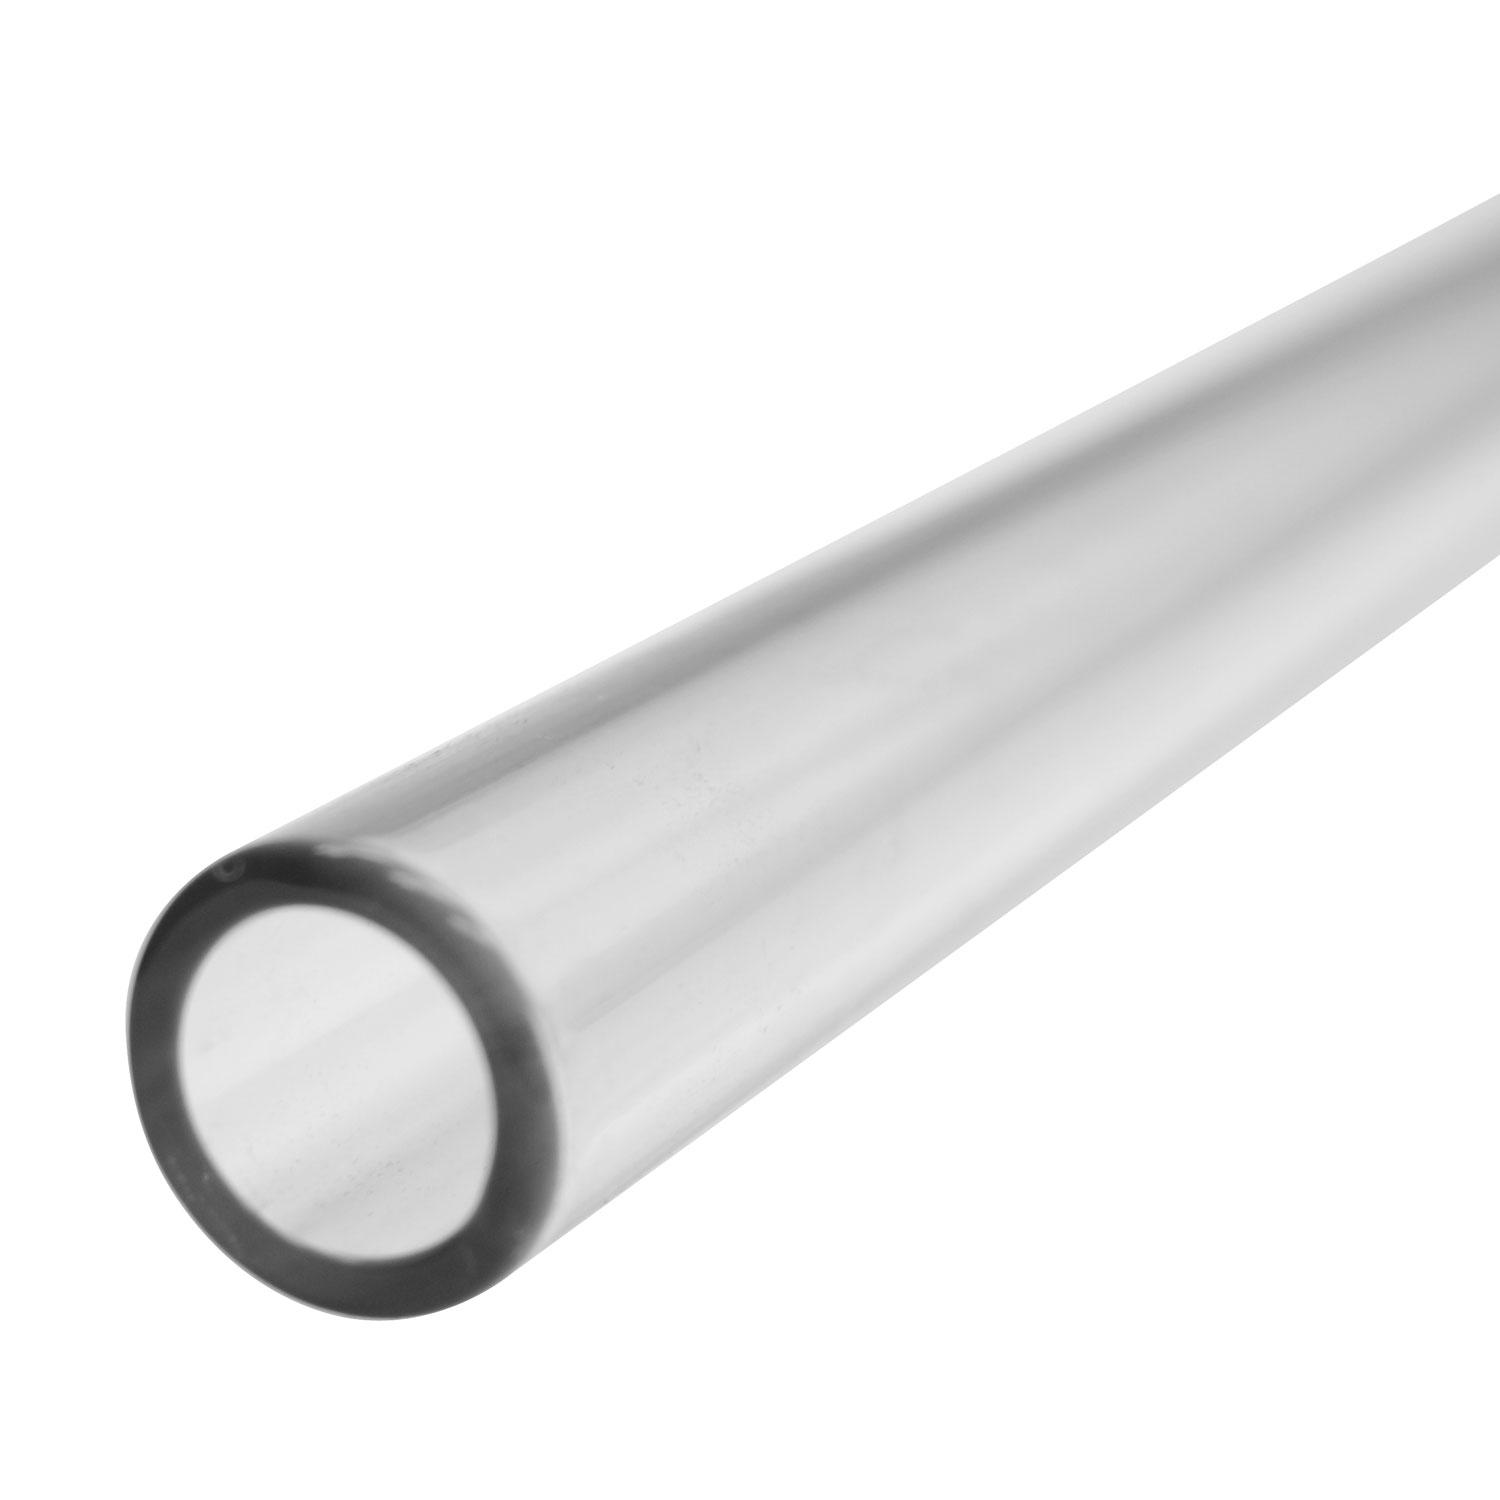 22mm Clear Simax Tube, 3mm Wall